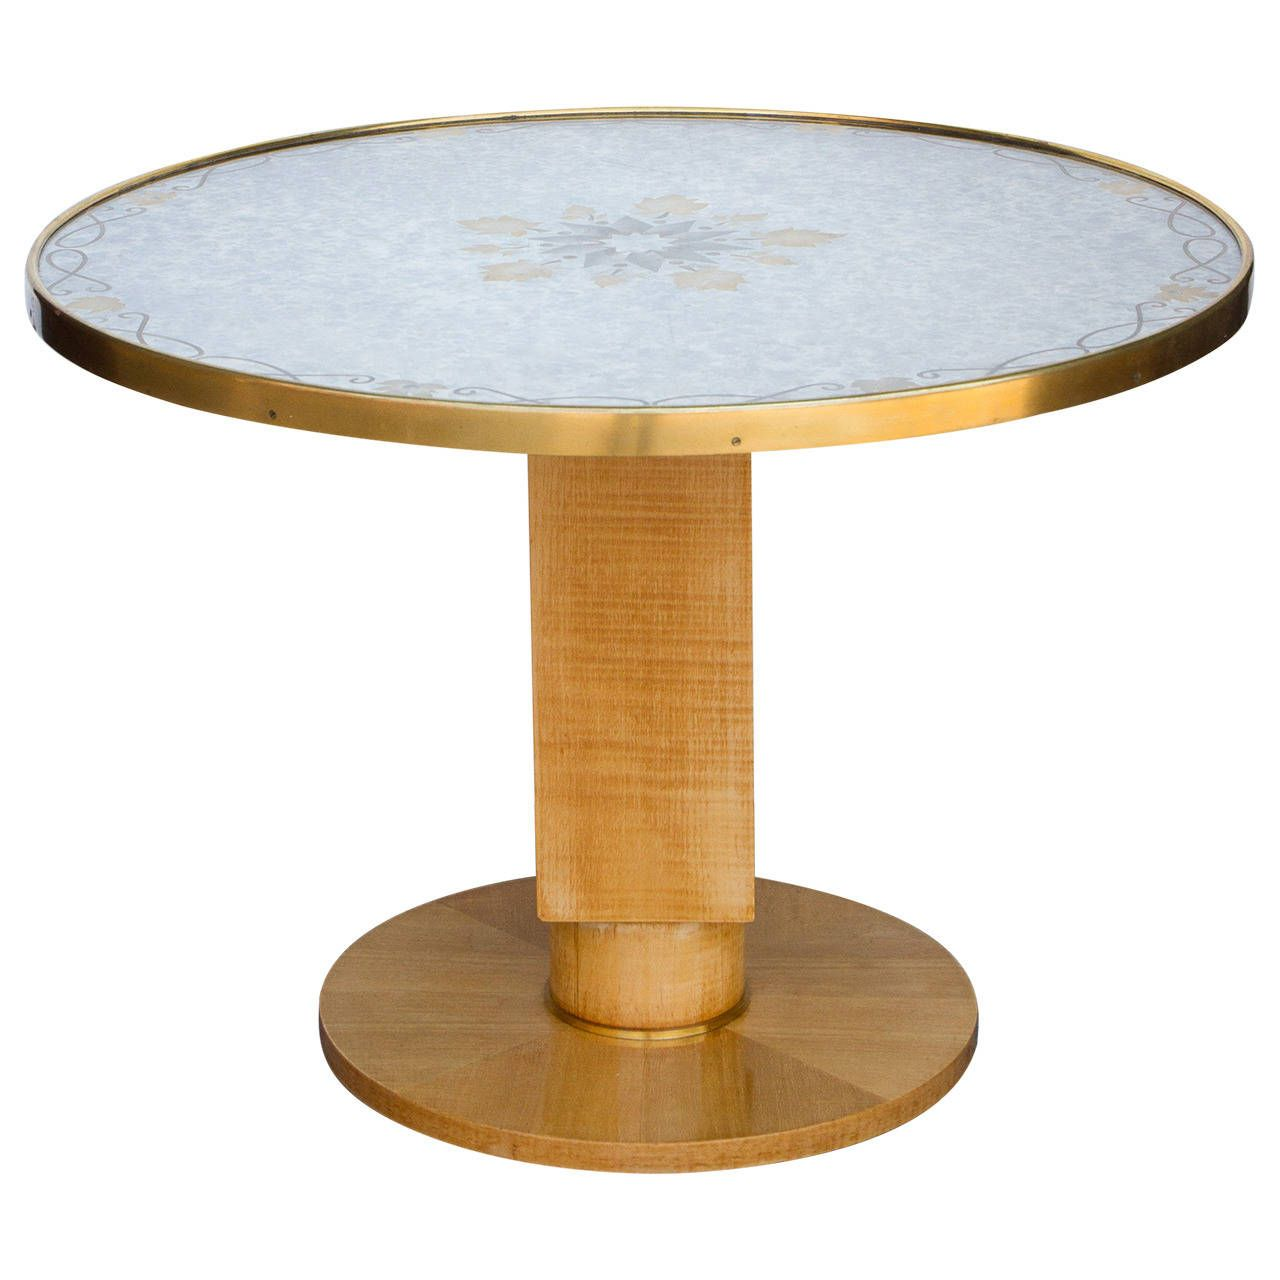 Art Deco Center Table by Jules Leleu   From a unique collection of antique and modern center tables at https://www.1stdibs.com/furniture/tables/center-tables/